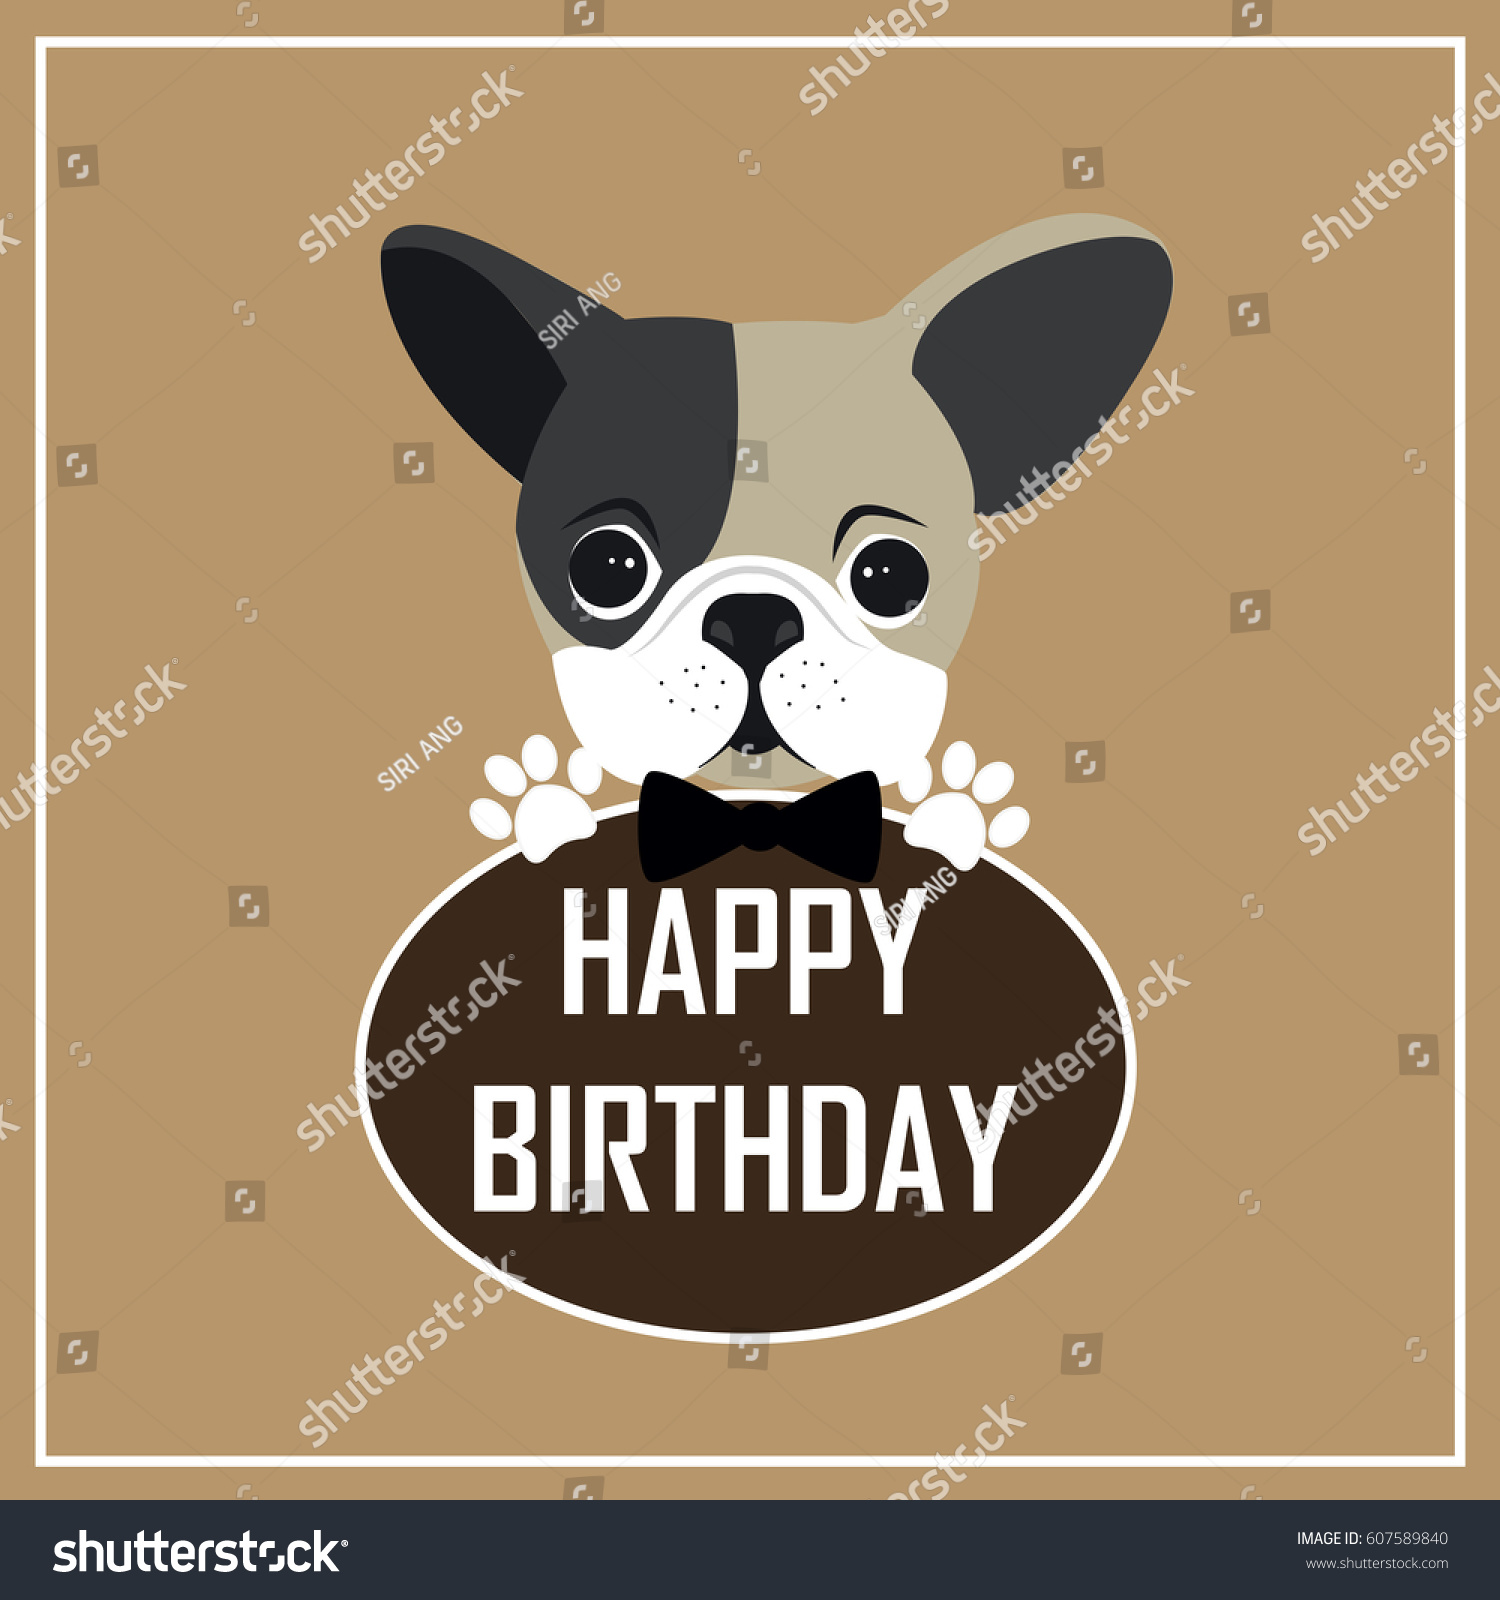 Happy birthday greeting cardcute dog cartoon stock vector happy birthday greeting cardte dog cartoon kristyandbryce Choice Image